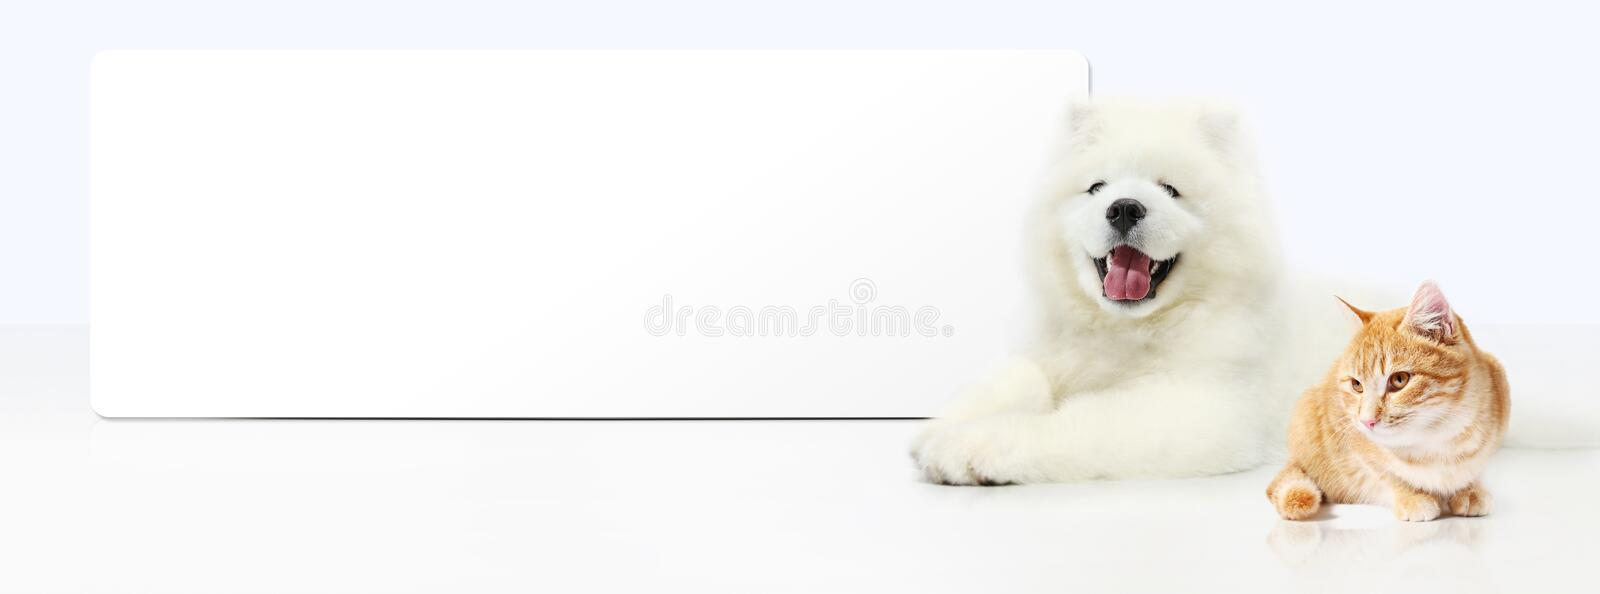 Dog and Cat with blank banner isolated on white background. Panoramic view stock photos